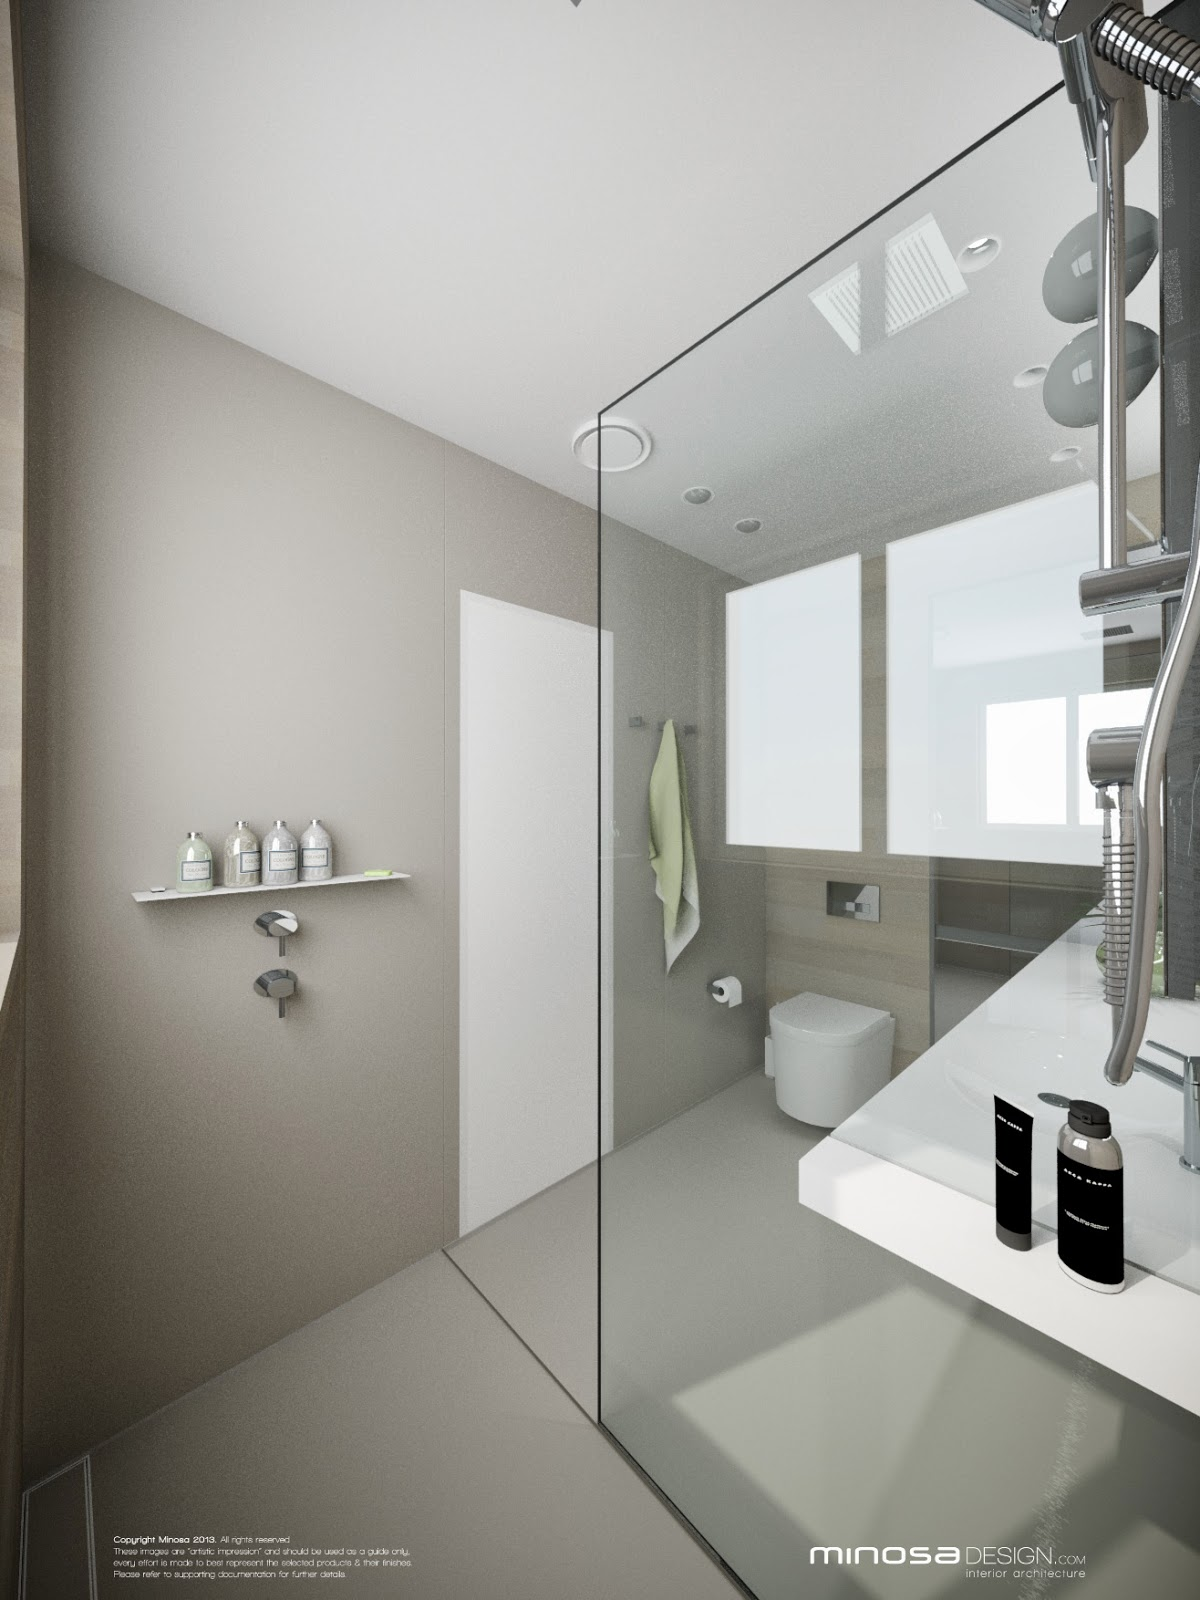 Minosa bringing sexy back the modern bathroom for Modern small ensuite